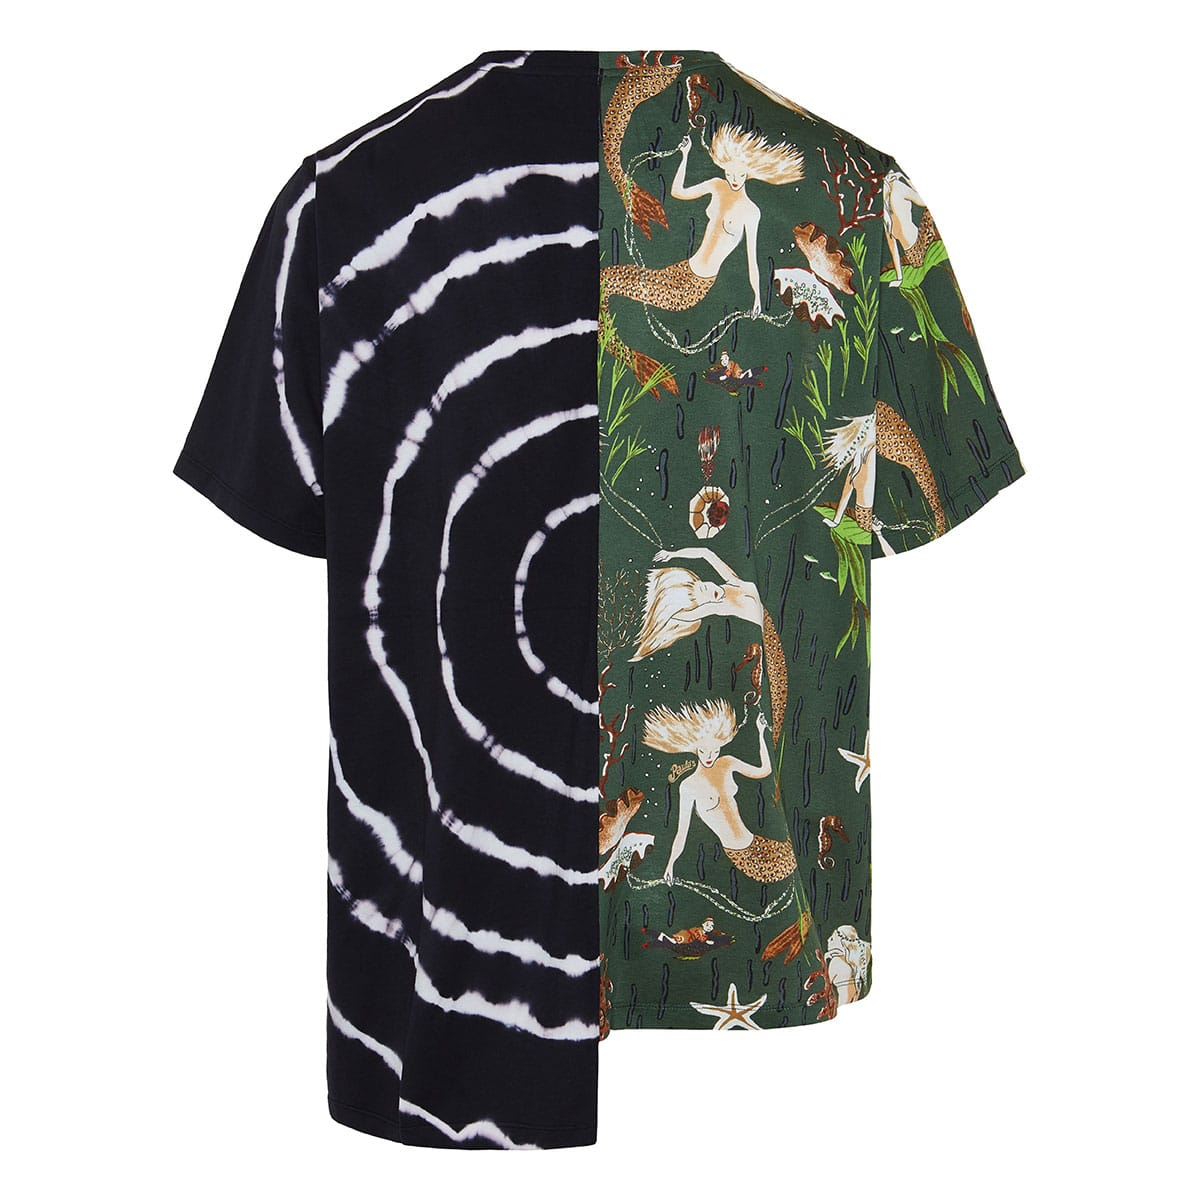 Oversized asymmetric printed t-shirt